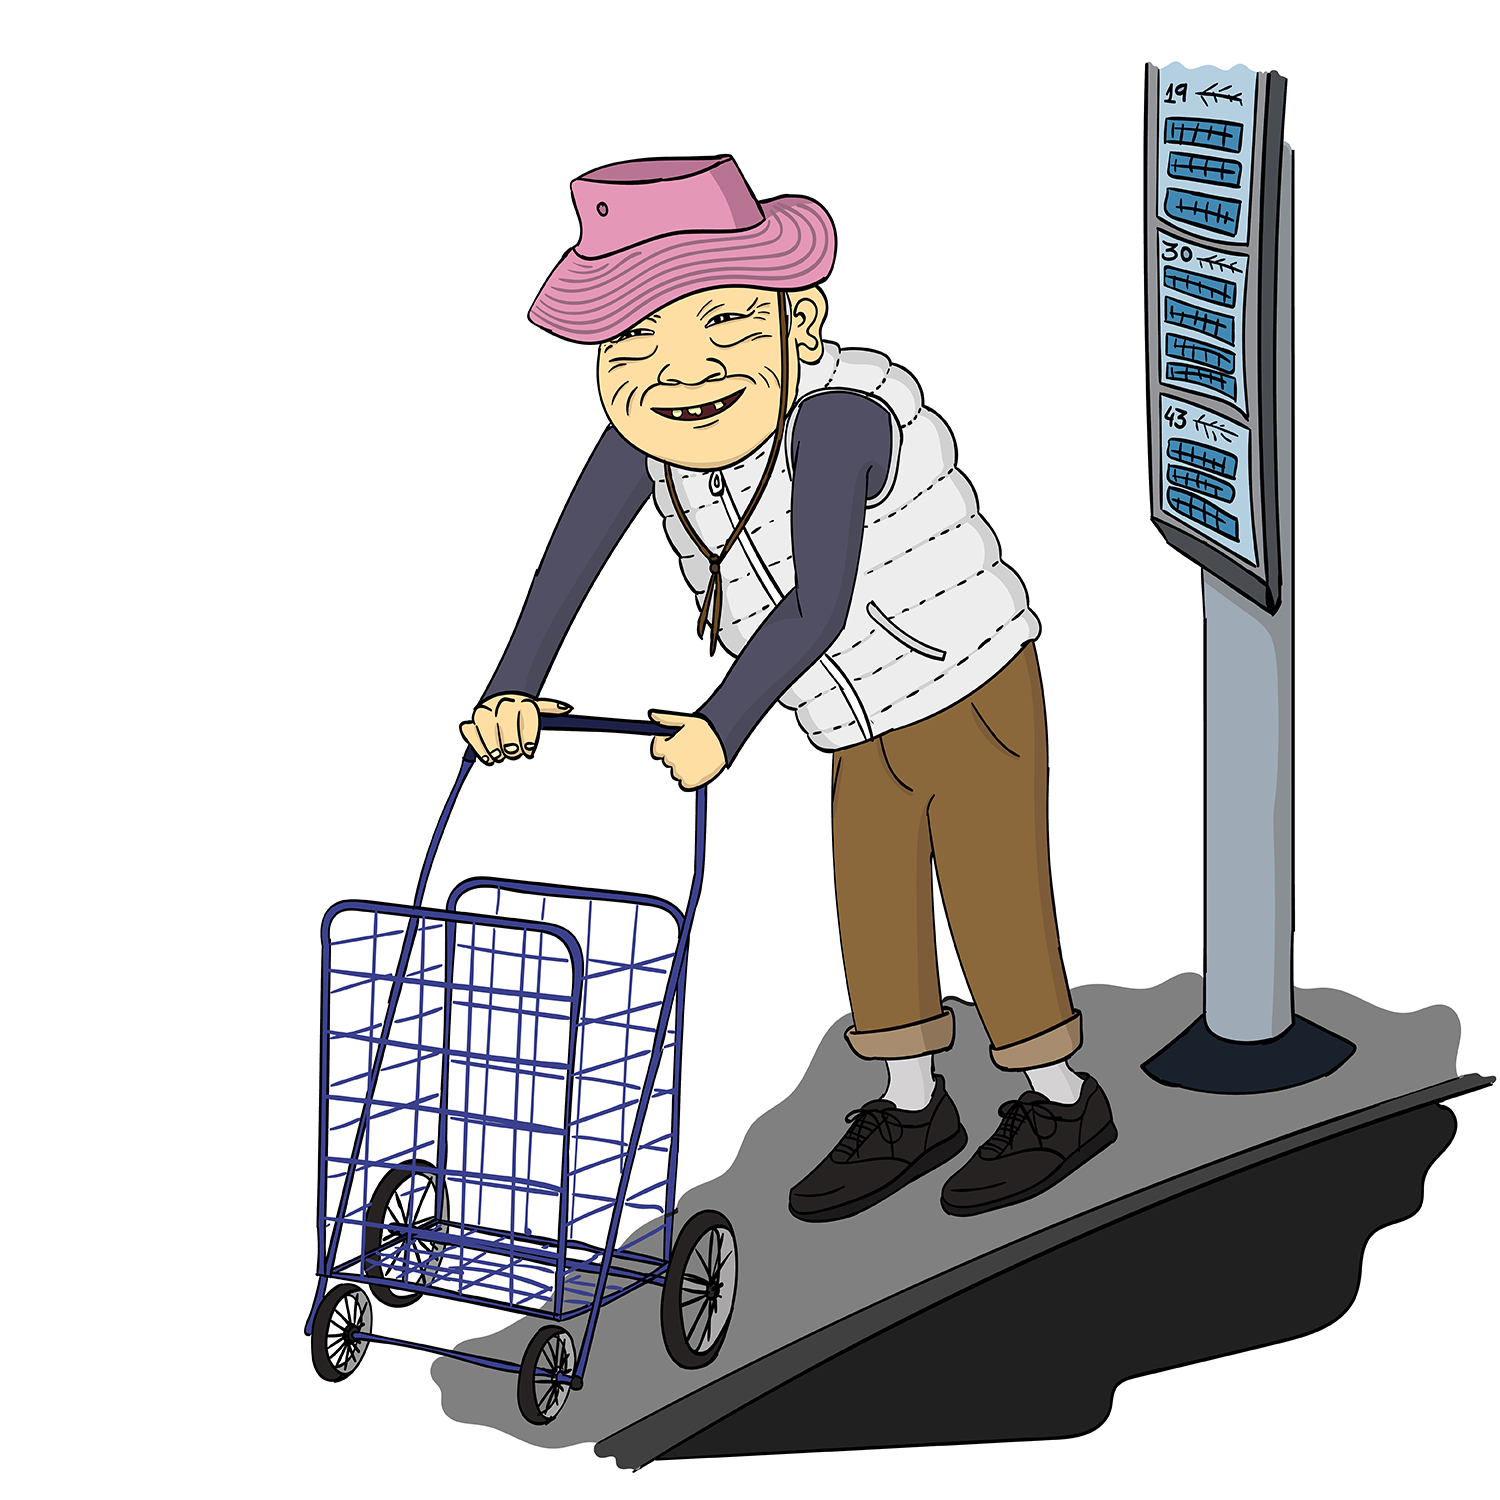 The Old Chinese Lady That Takes The Bus